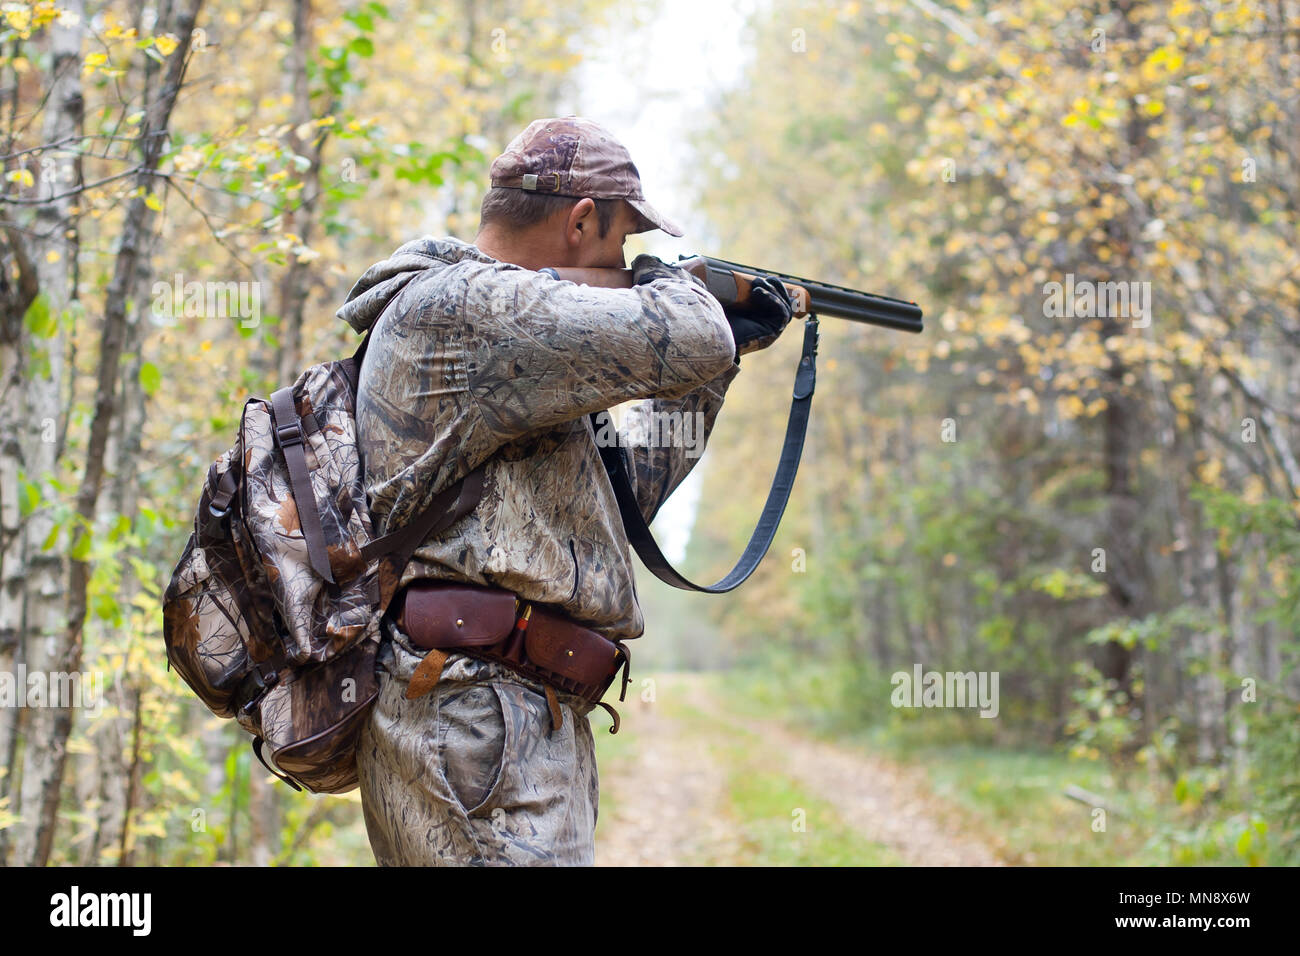 hunter in camouflage taking aim from a shotgun in the wildfowl Stock Photo